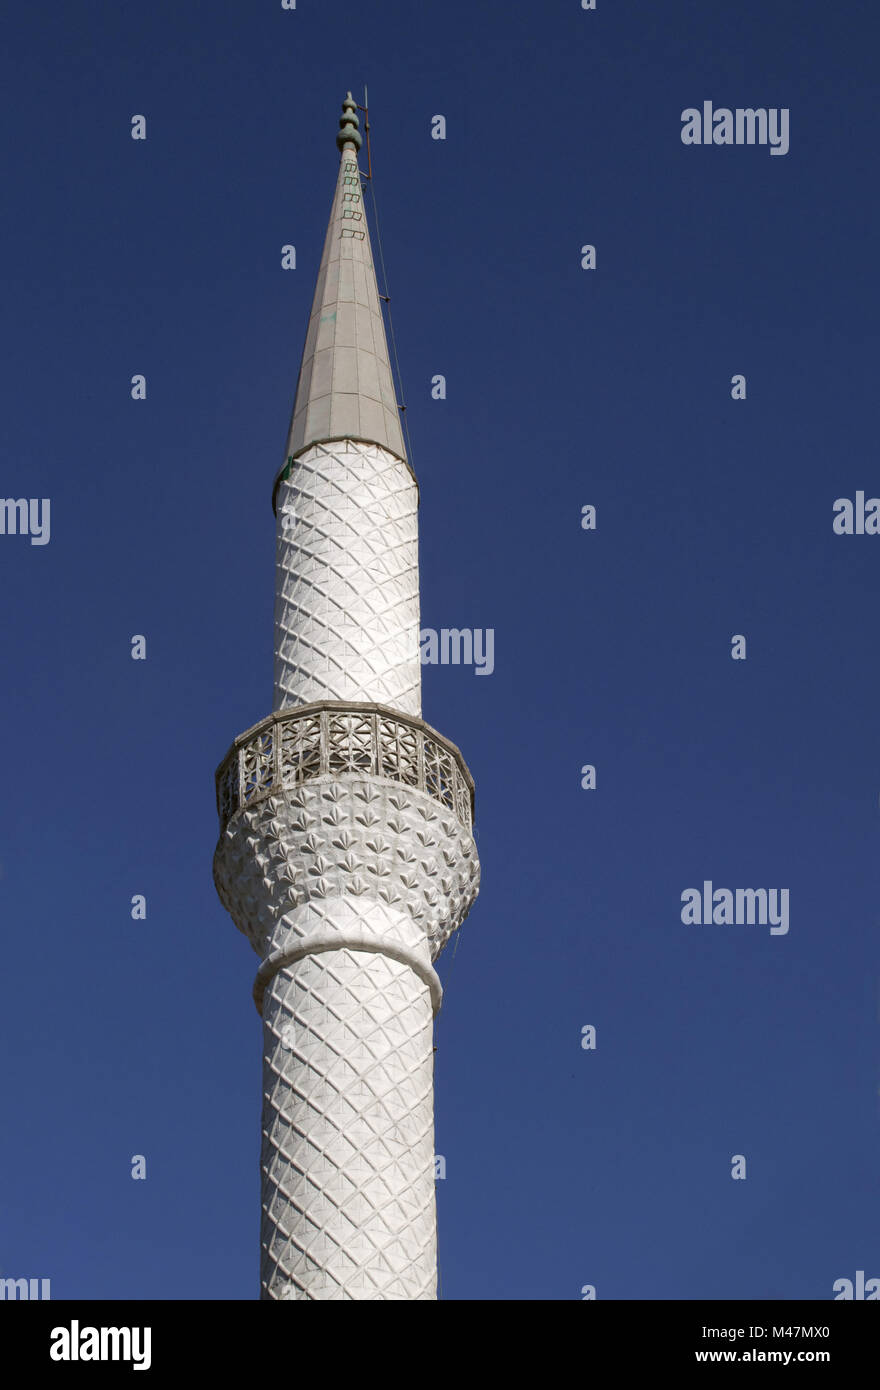 Minaret, view from below - Stock Image